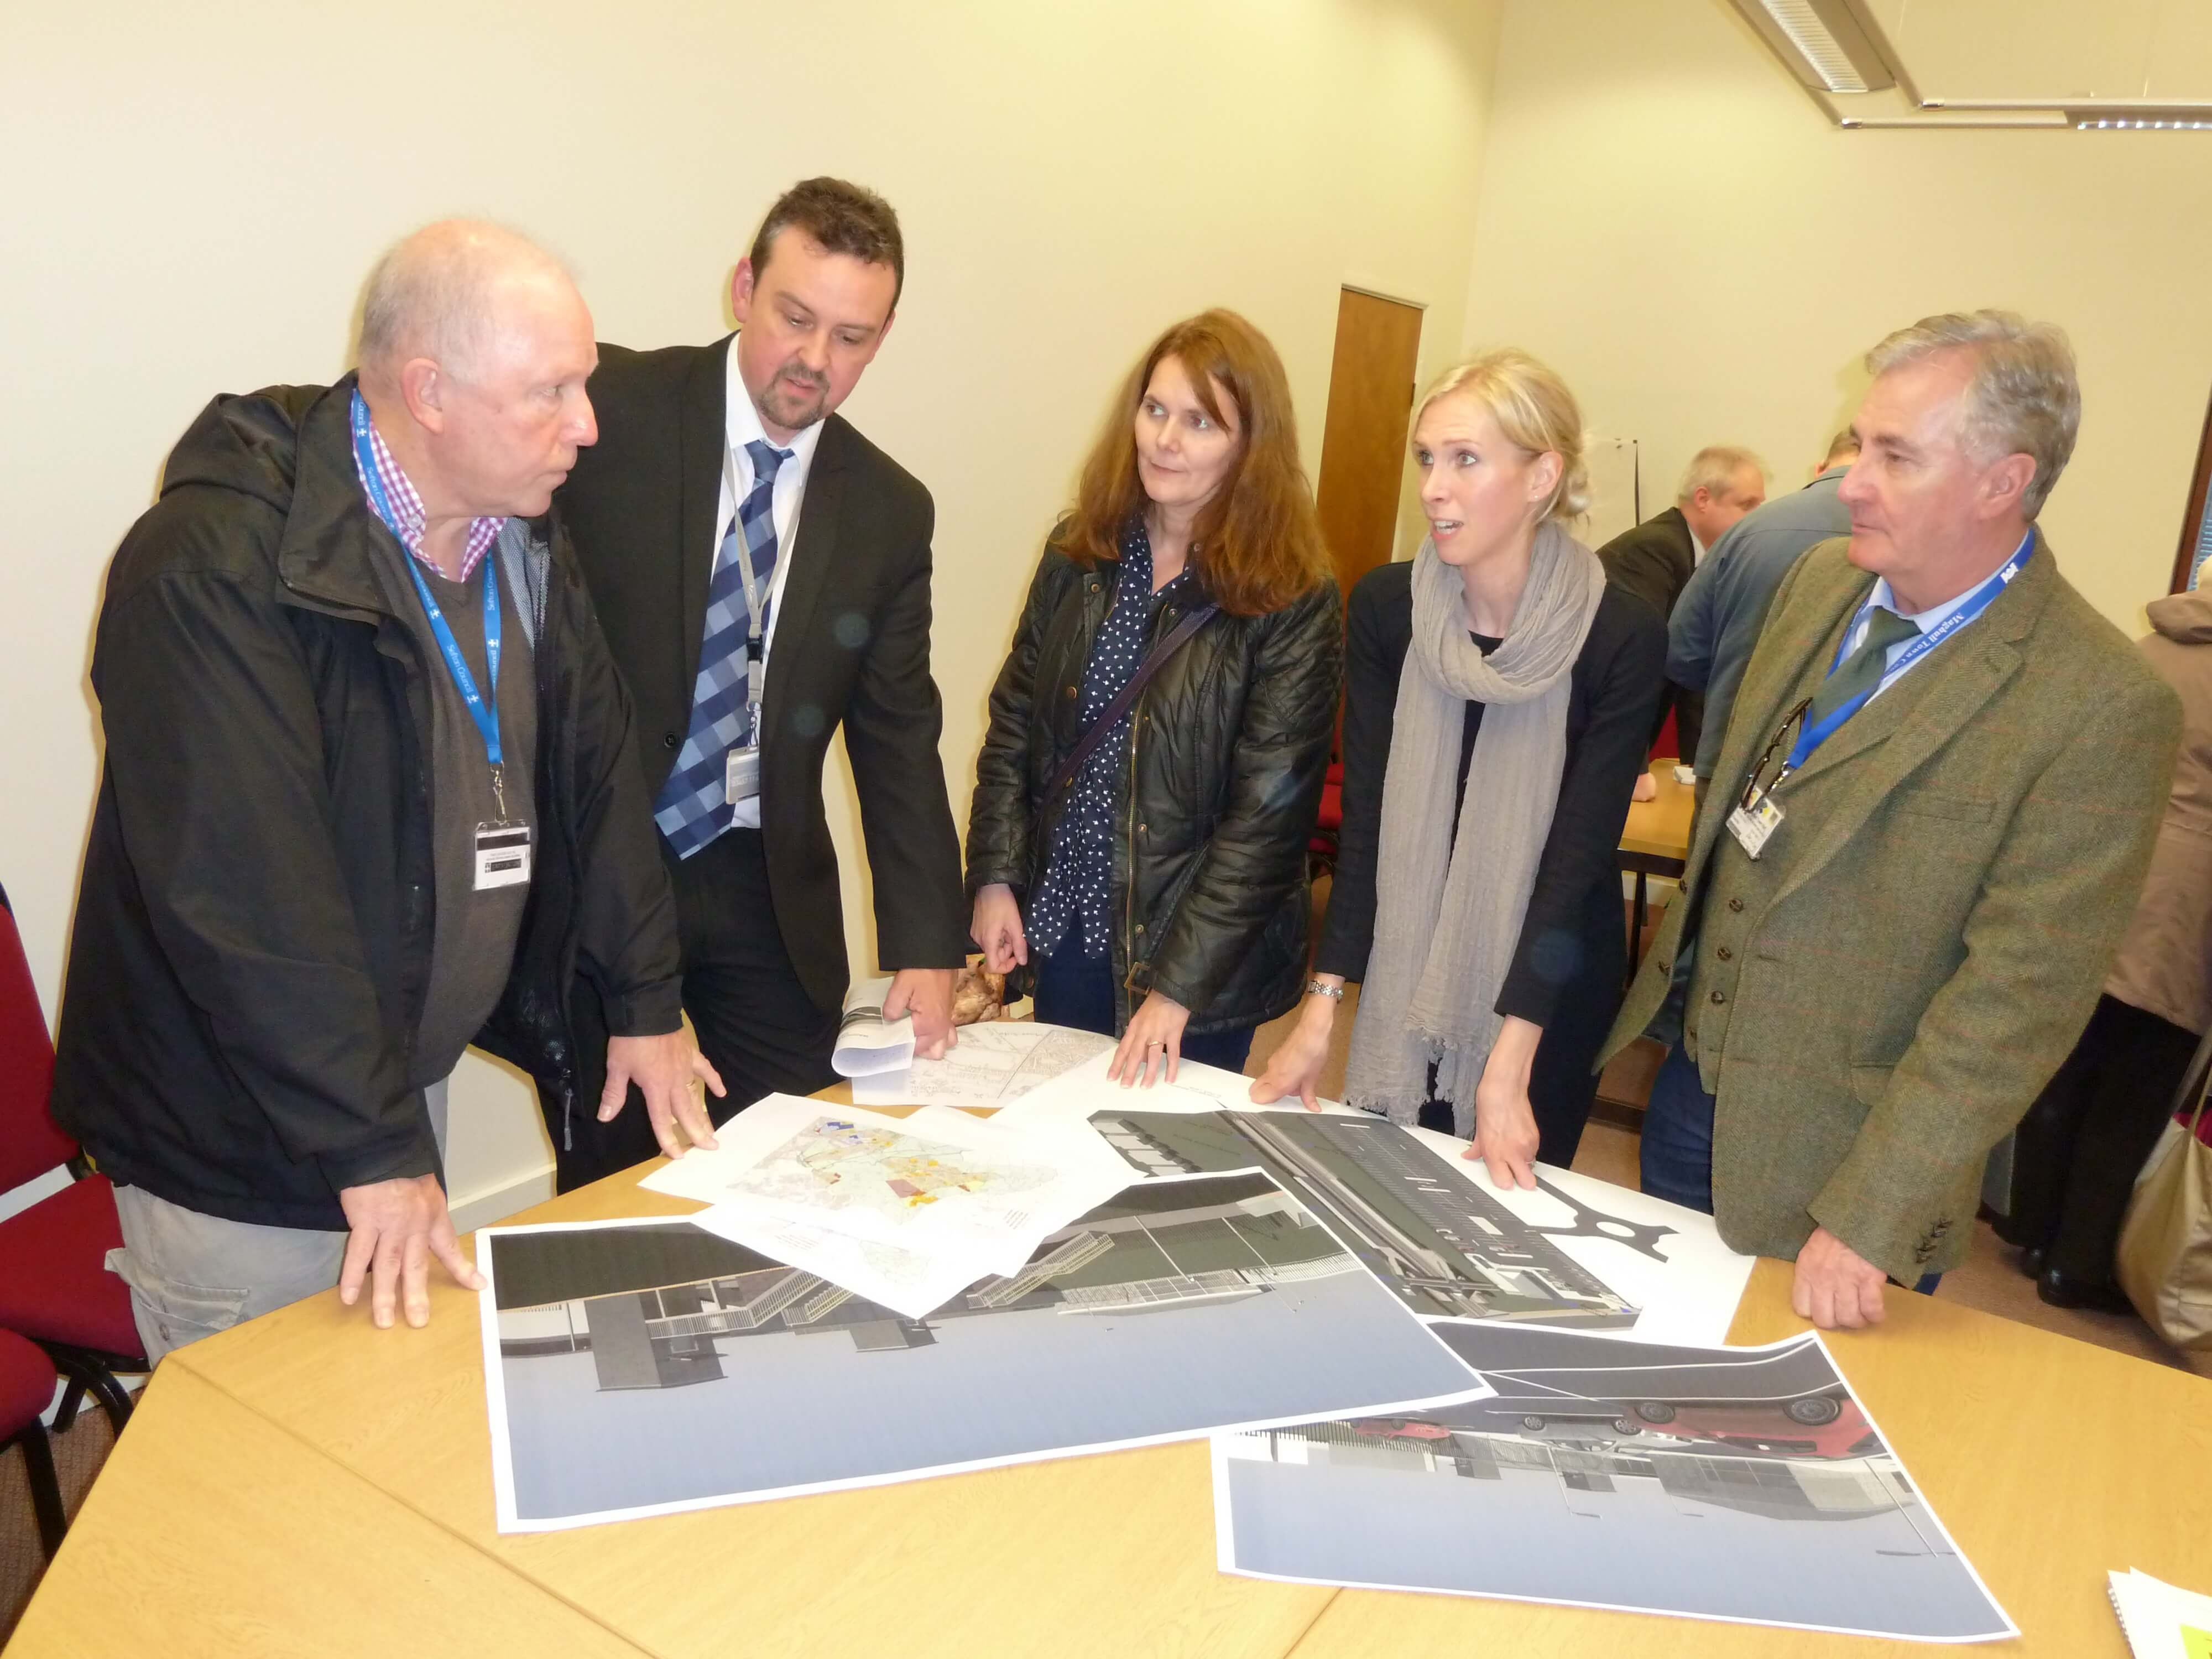 Maghull and Lydiate Labour councillors, John Sayers, Lynn Gatherer and Patrick McKinley talk through the plans for the new Maghull North station with Network Rail's project manager Rob Grey and Jill Stephenson.